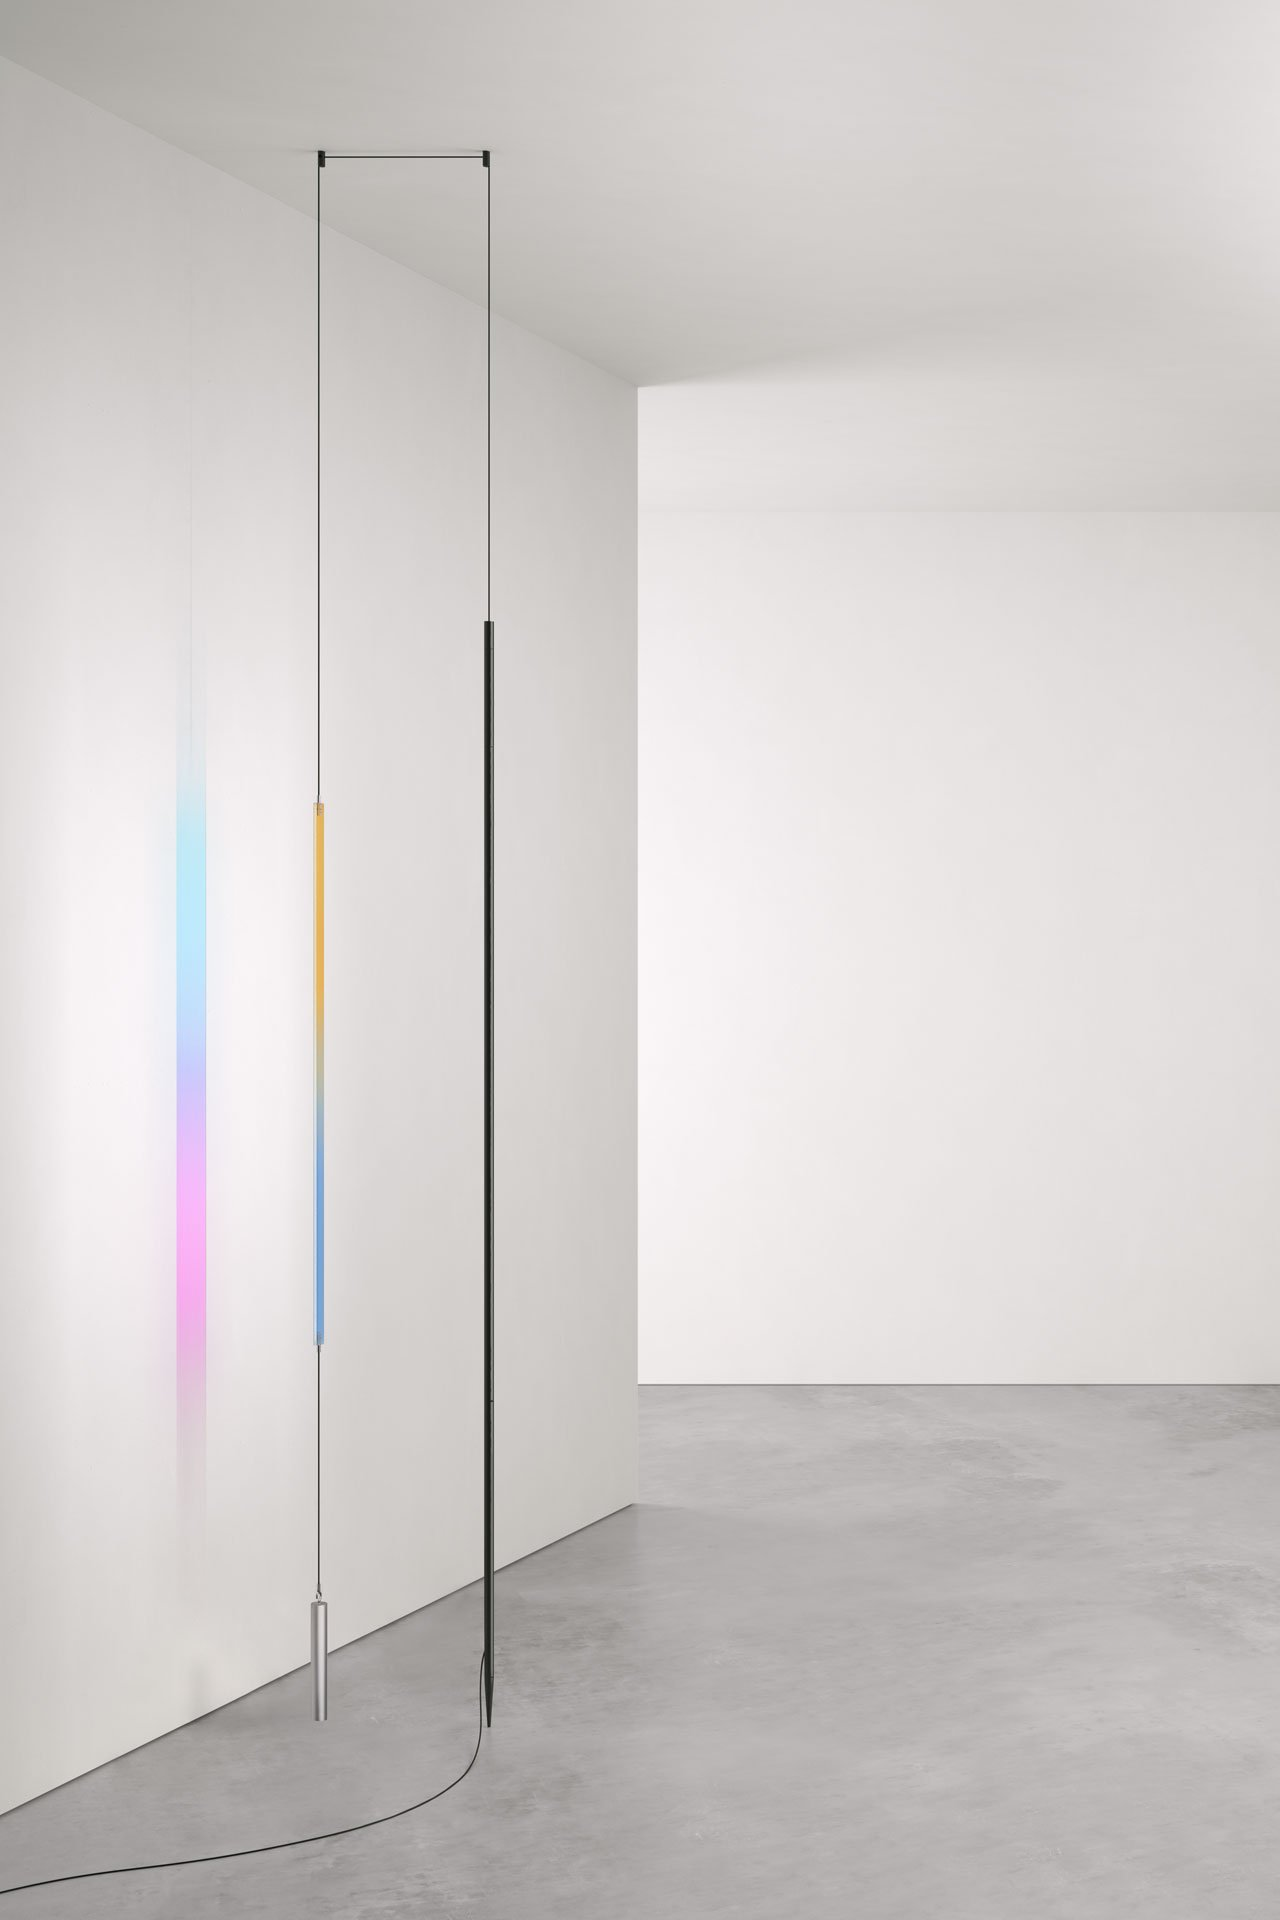 Blush lamp made of a Led strip and a piece of dichroic glass which casts brightly-tinted reflections on walls, designed by Studio Formafantasma for FLOS.